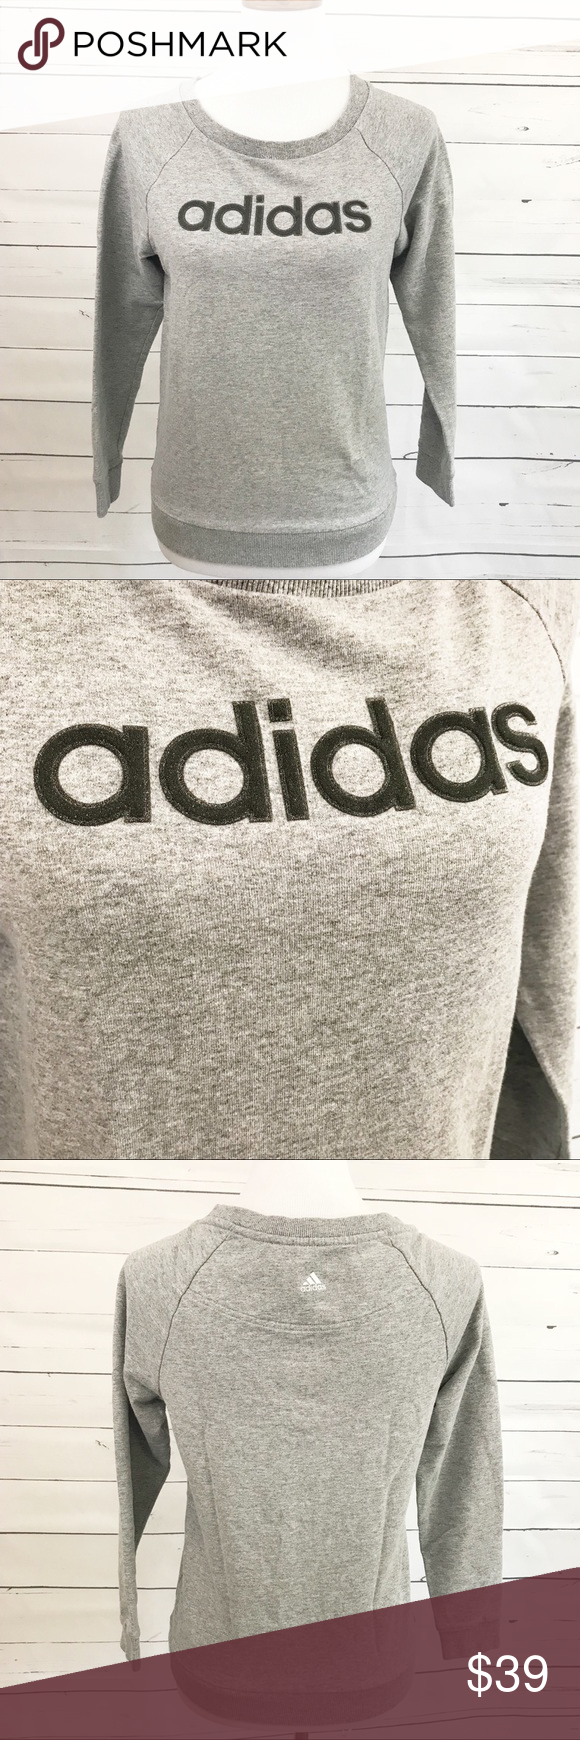 dc0a57dad56 ... Cute crew neck pullover sweatshirt by adidas. Adidas is written with  crystals adding a little sparkle to your gym or althleisure outfit. Size  small.